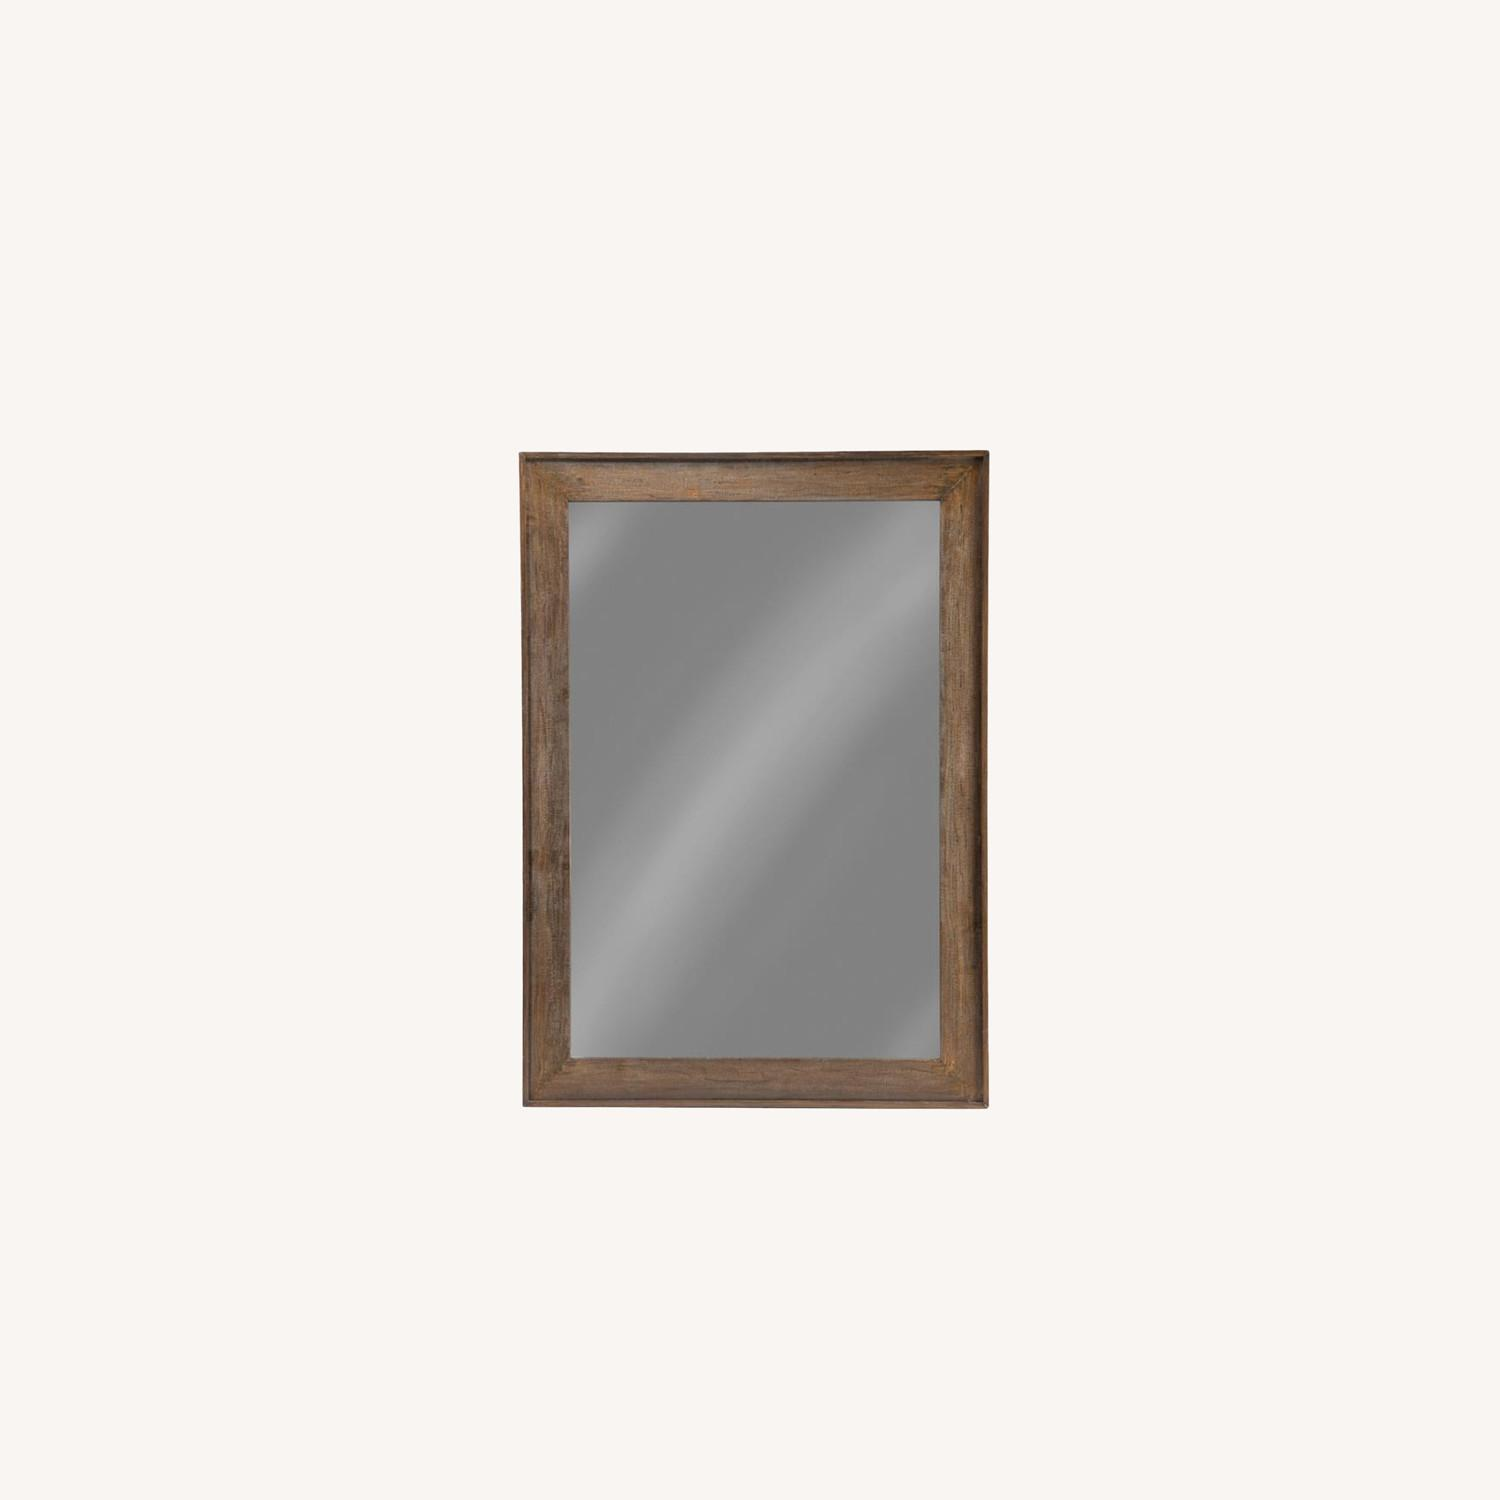 Mirror W/ Contoured Pine Frame & Distressed Look - image-3